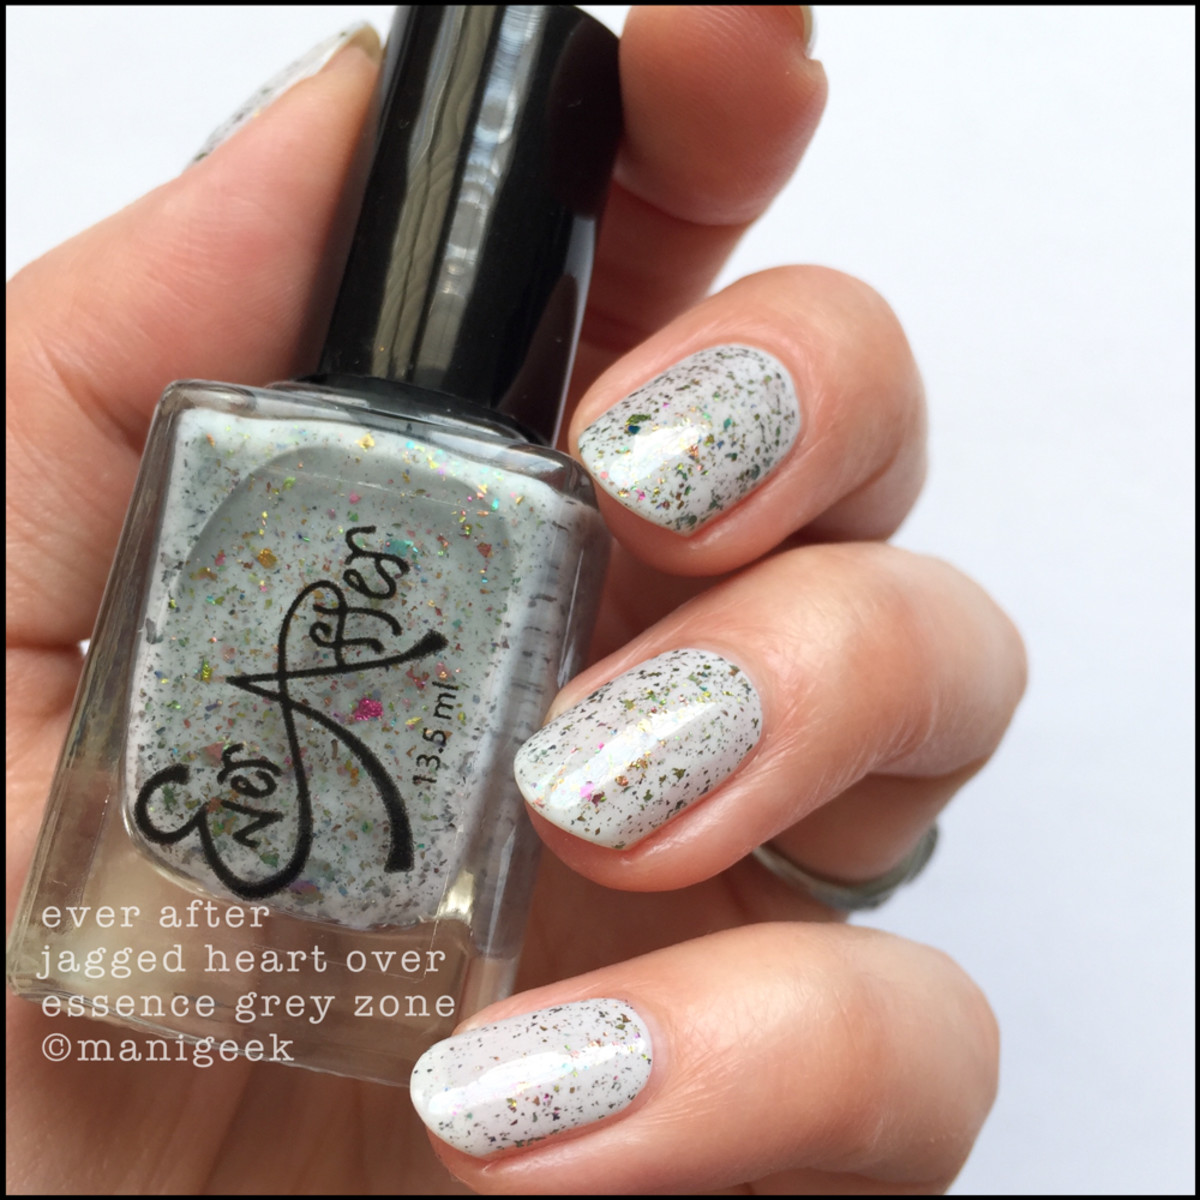 Ever After Jagged Heart over Essence Grey Zone _ 1000 Days of Untried Nail Polish Week 4